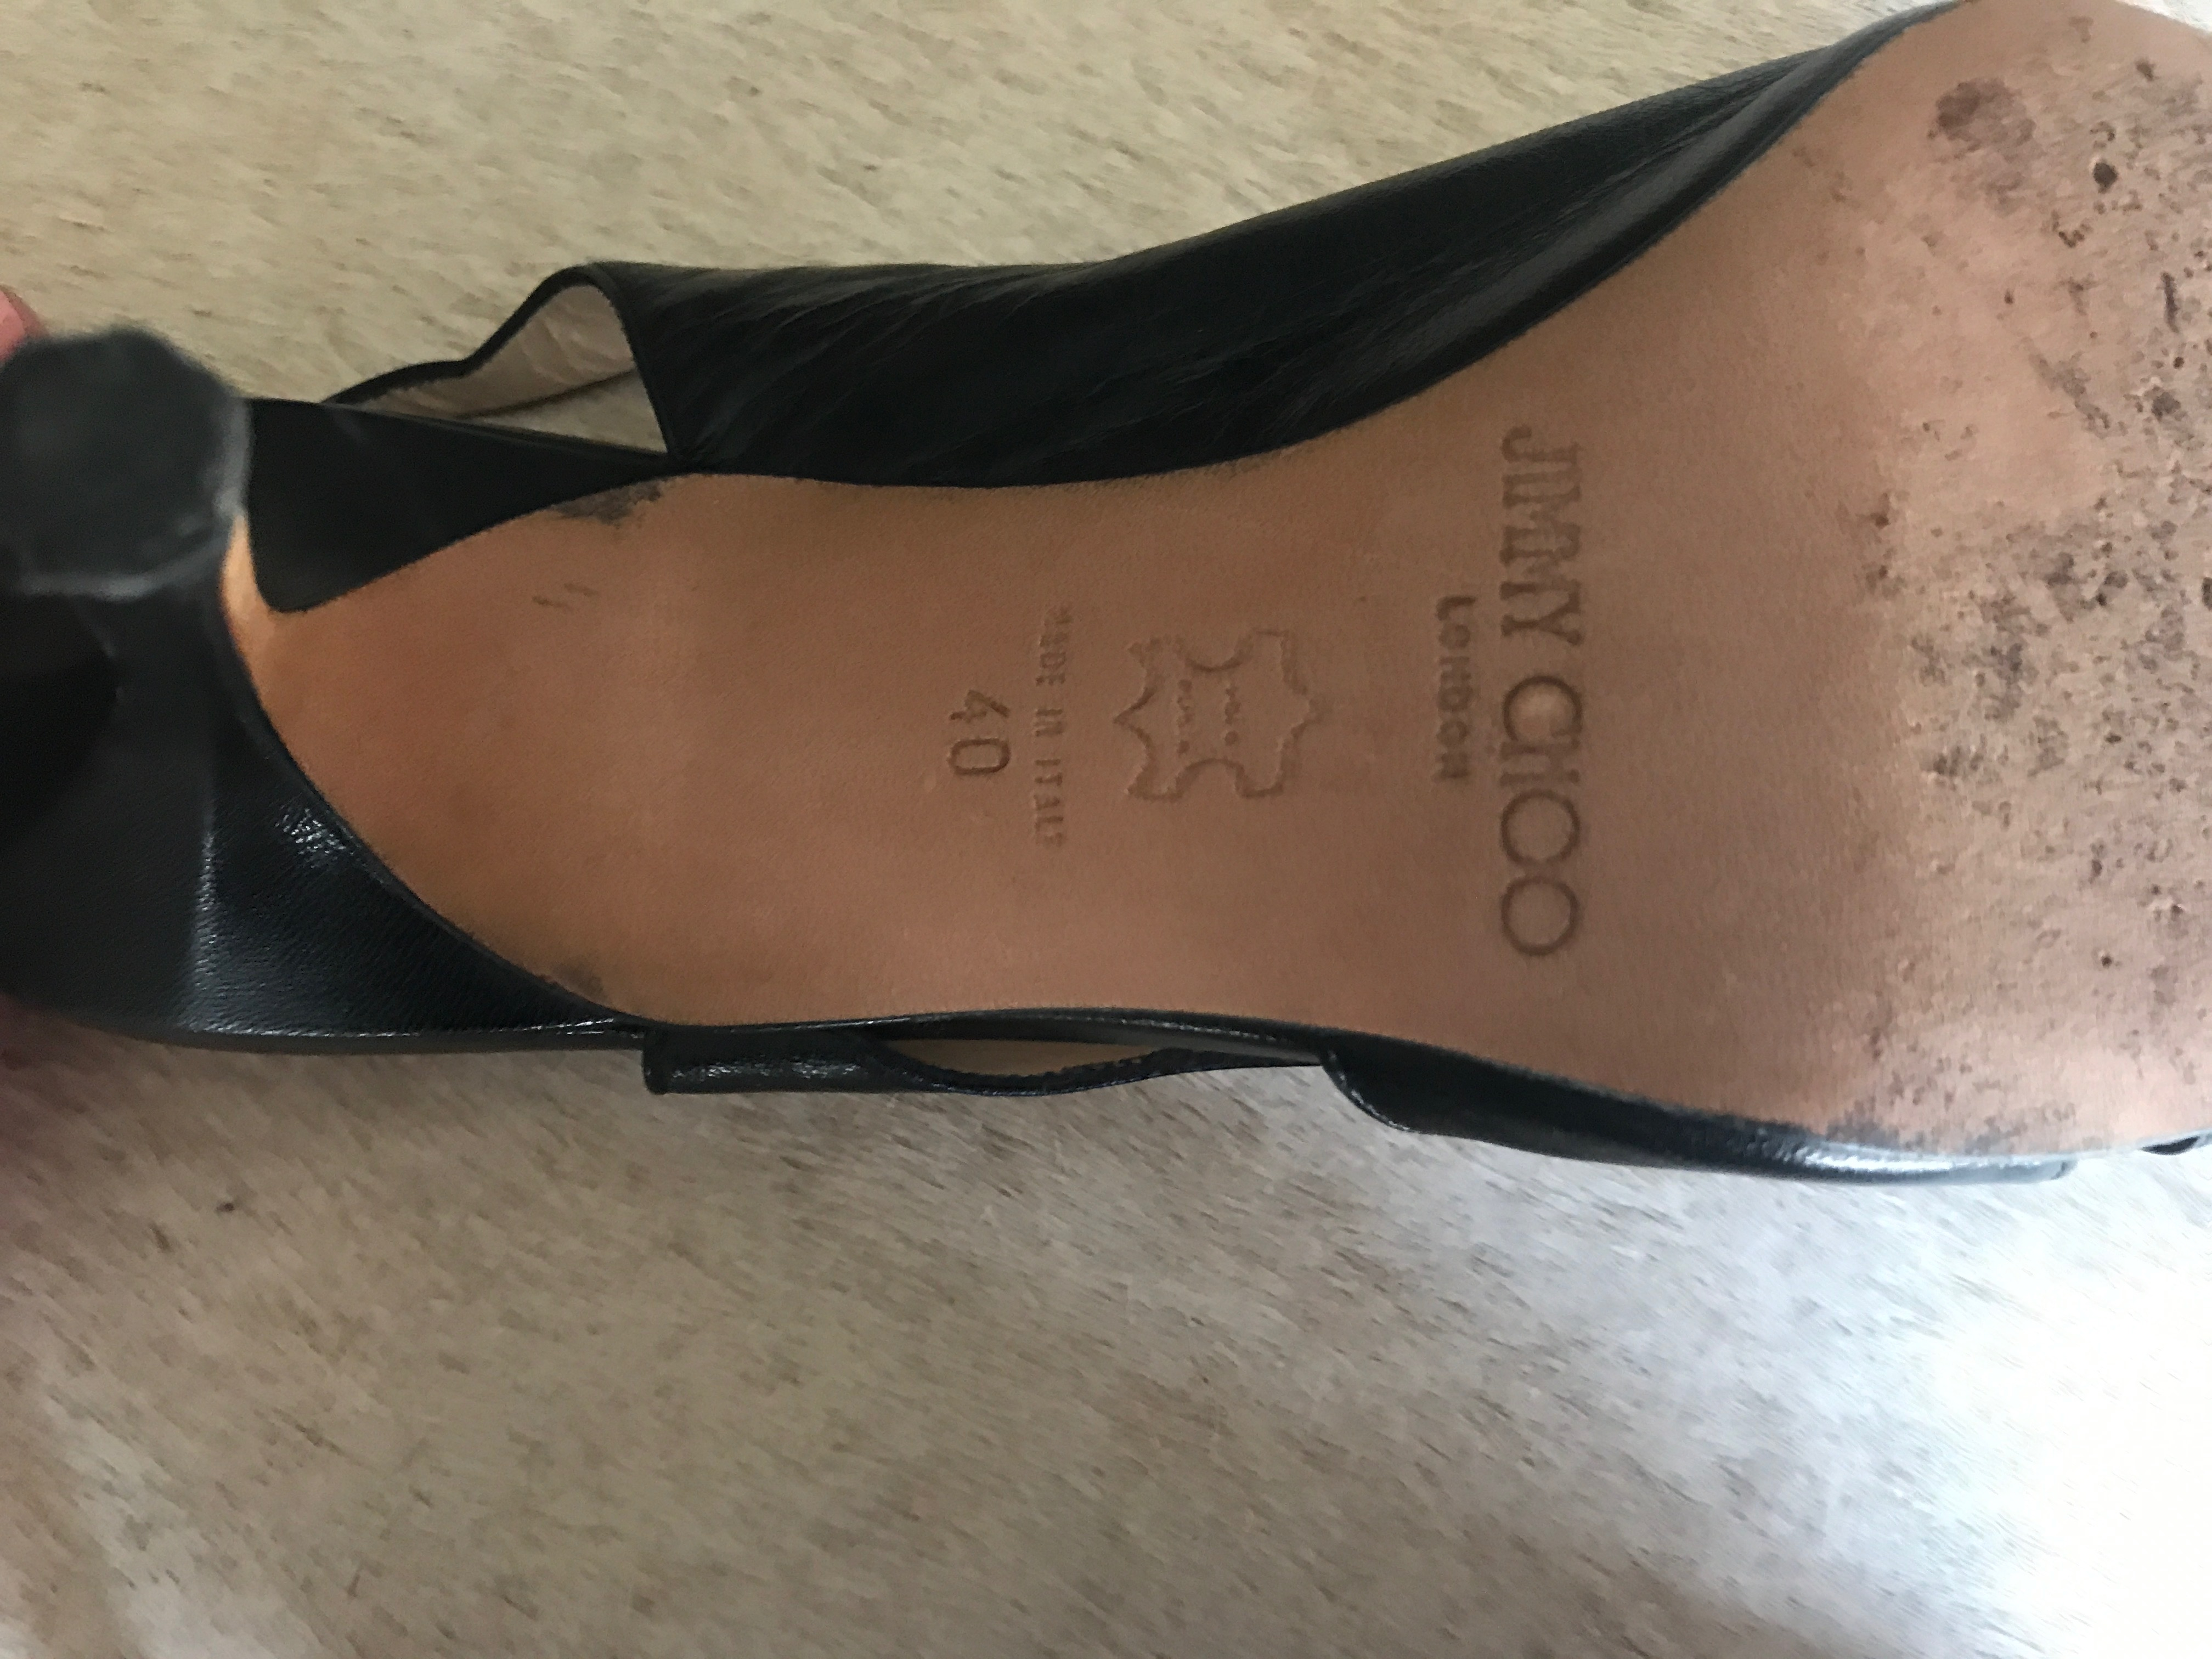 Jimmy Choo shoes real or fake? - The